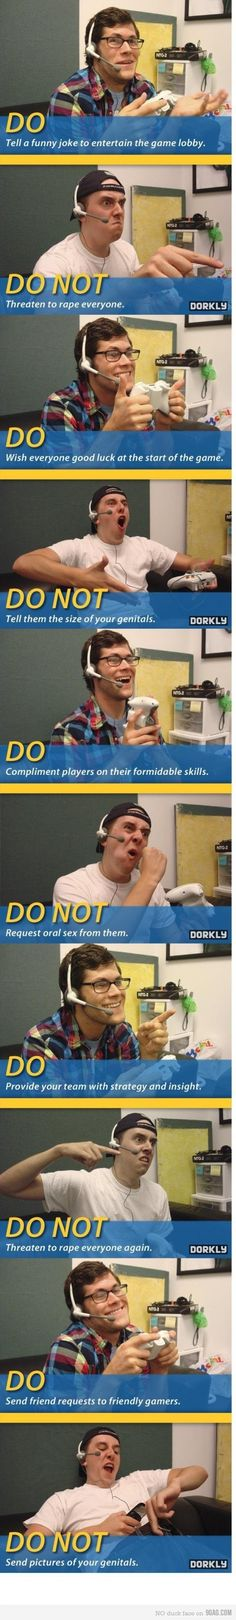 Just some online game rules